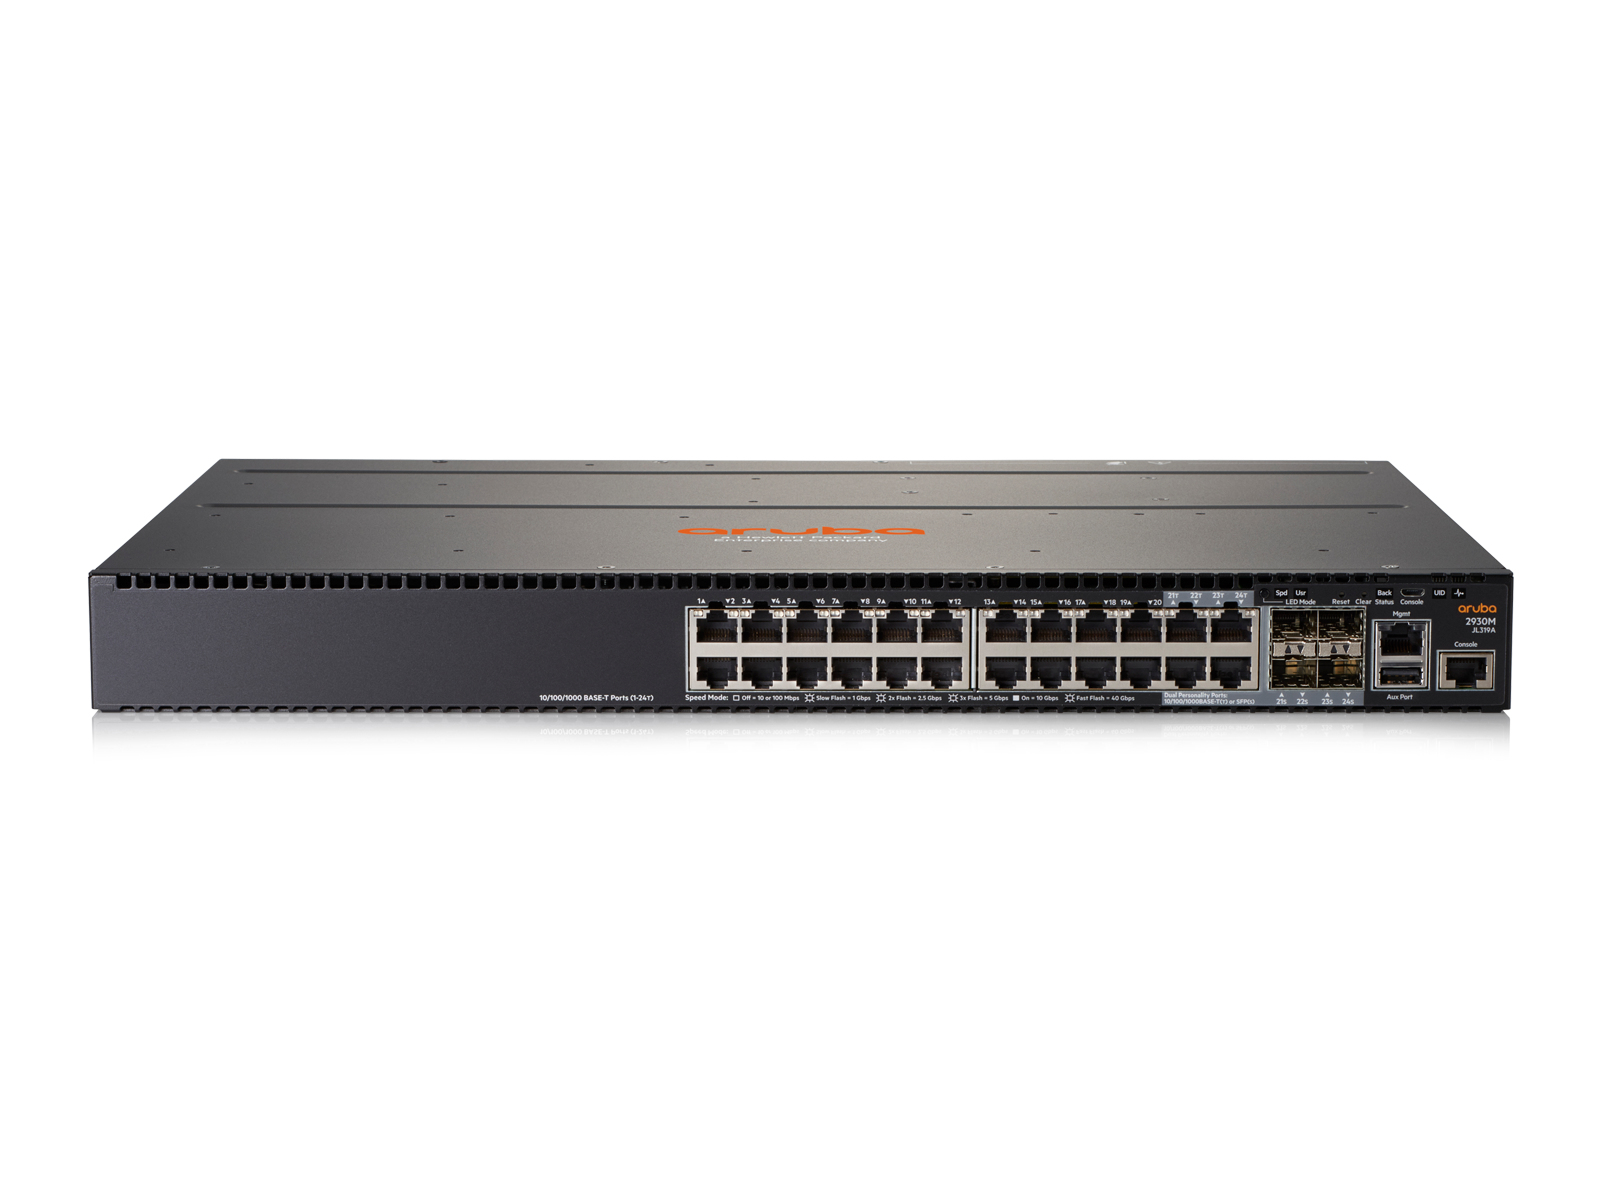 Hewlett Packard Enterprise Aruba 2930M 24G 1-slot Managed L3 Gigabit Ethernet (10/100/1000) 1U Grey